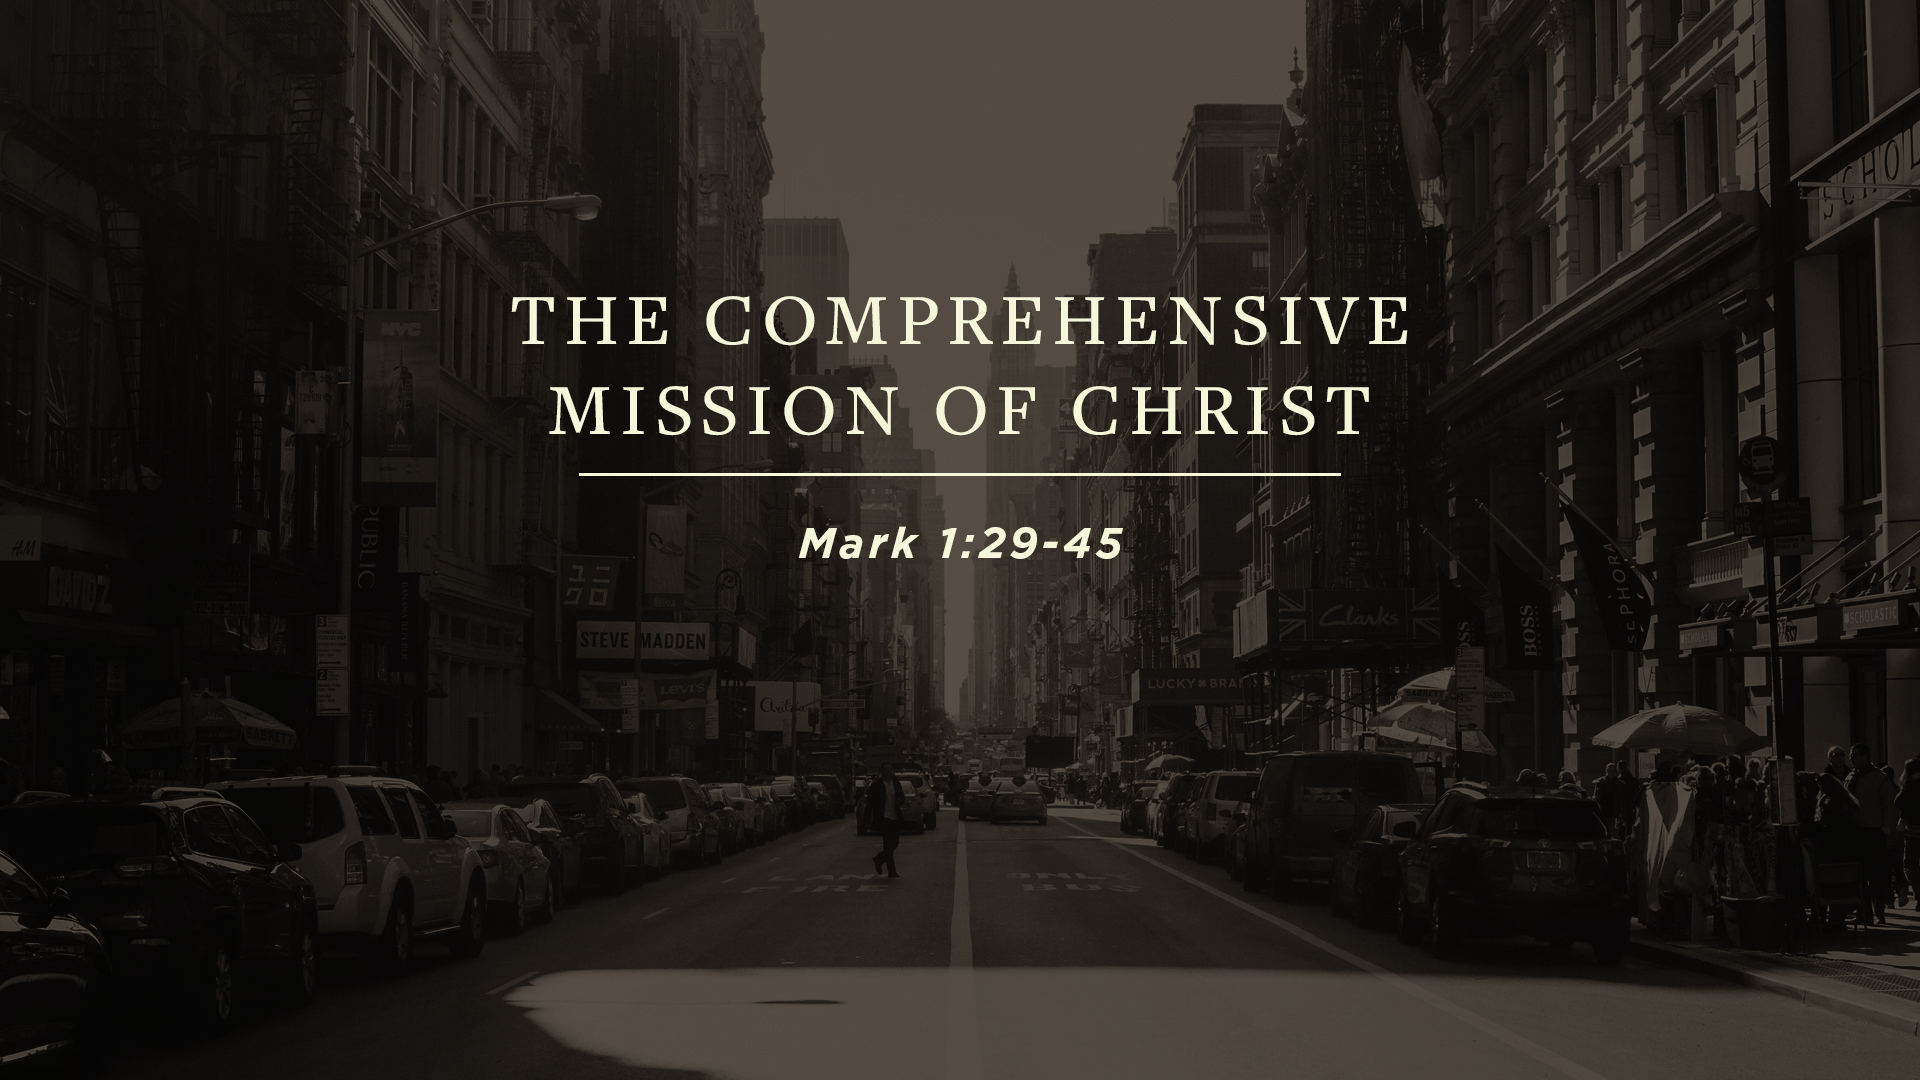 The Comprehensive Mission of Christ